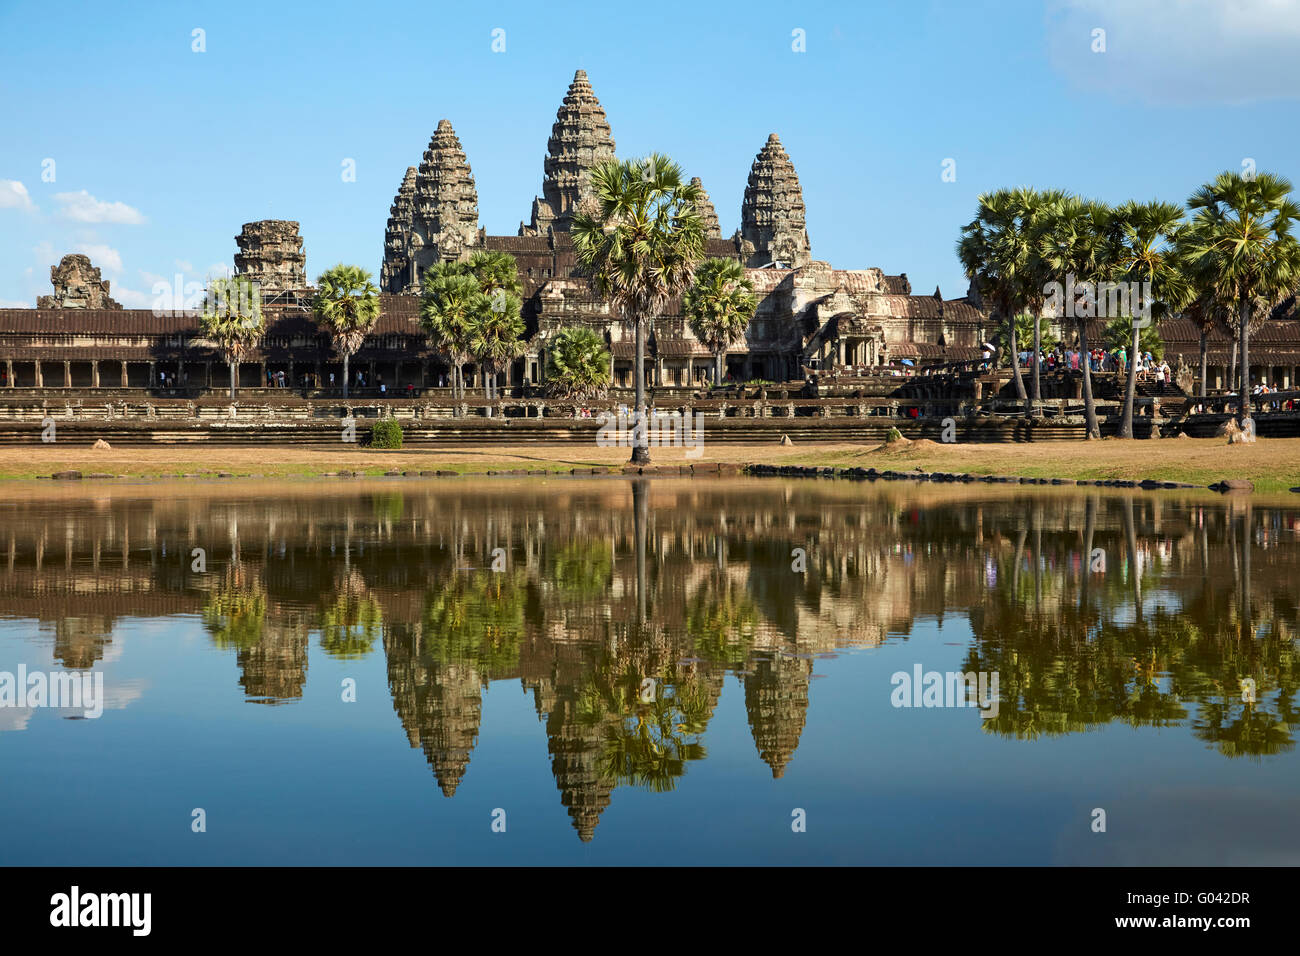 Angkor Wat temple complex (12th century), Angkor World Heritage Site, Siem Reap, Cambodia - Stock Image